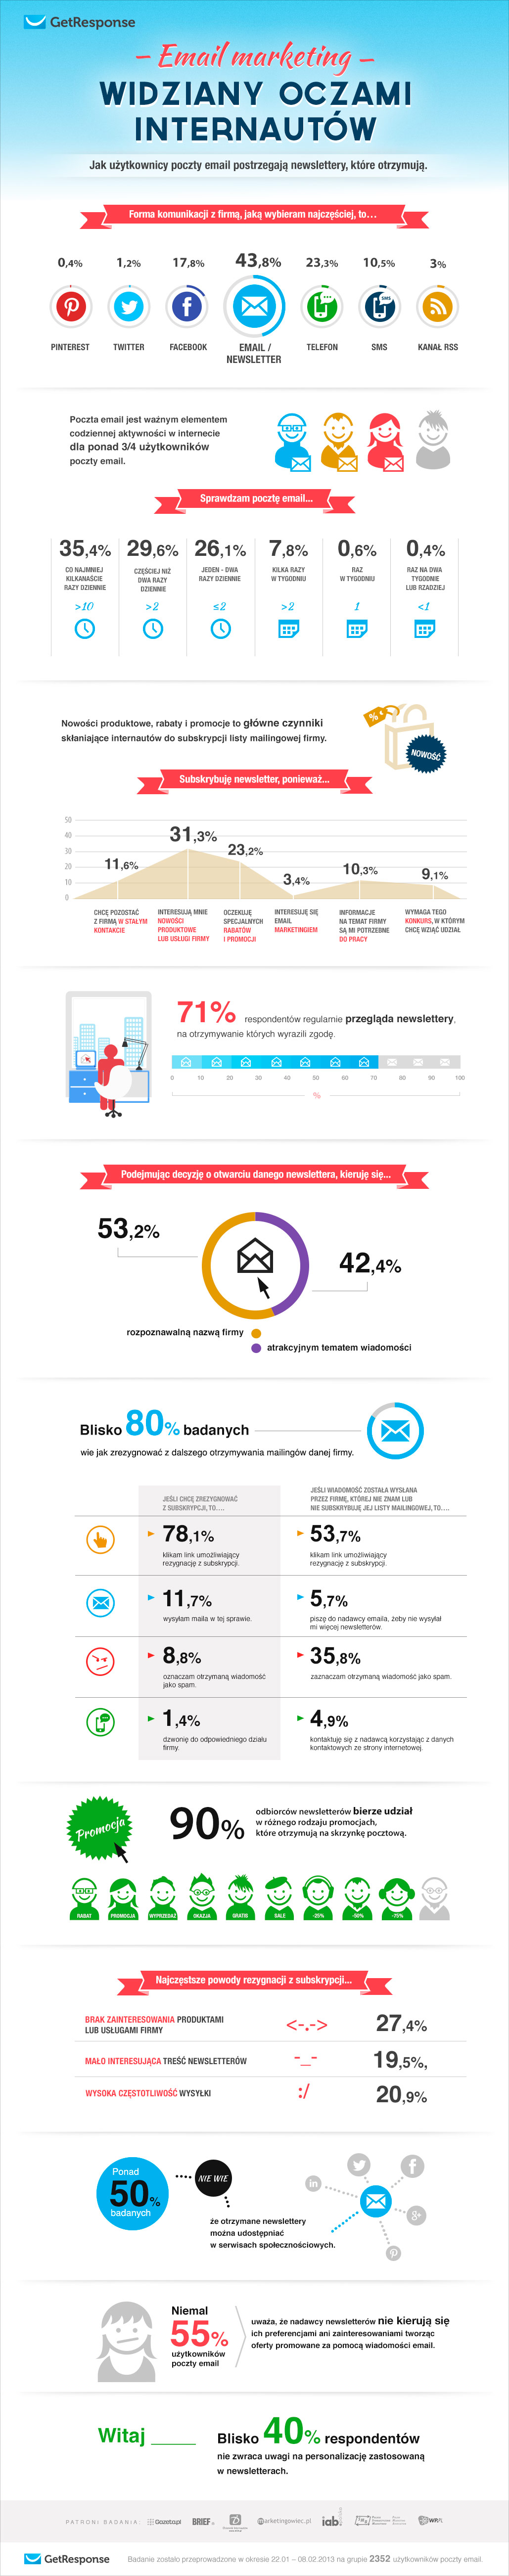 getresponse_raport_email-marketing_201303_infografika